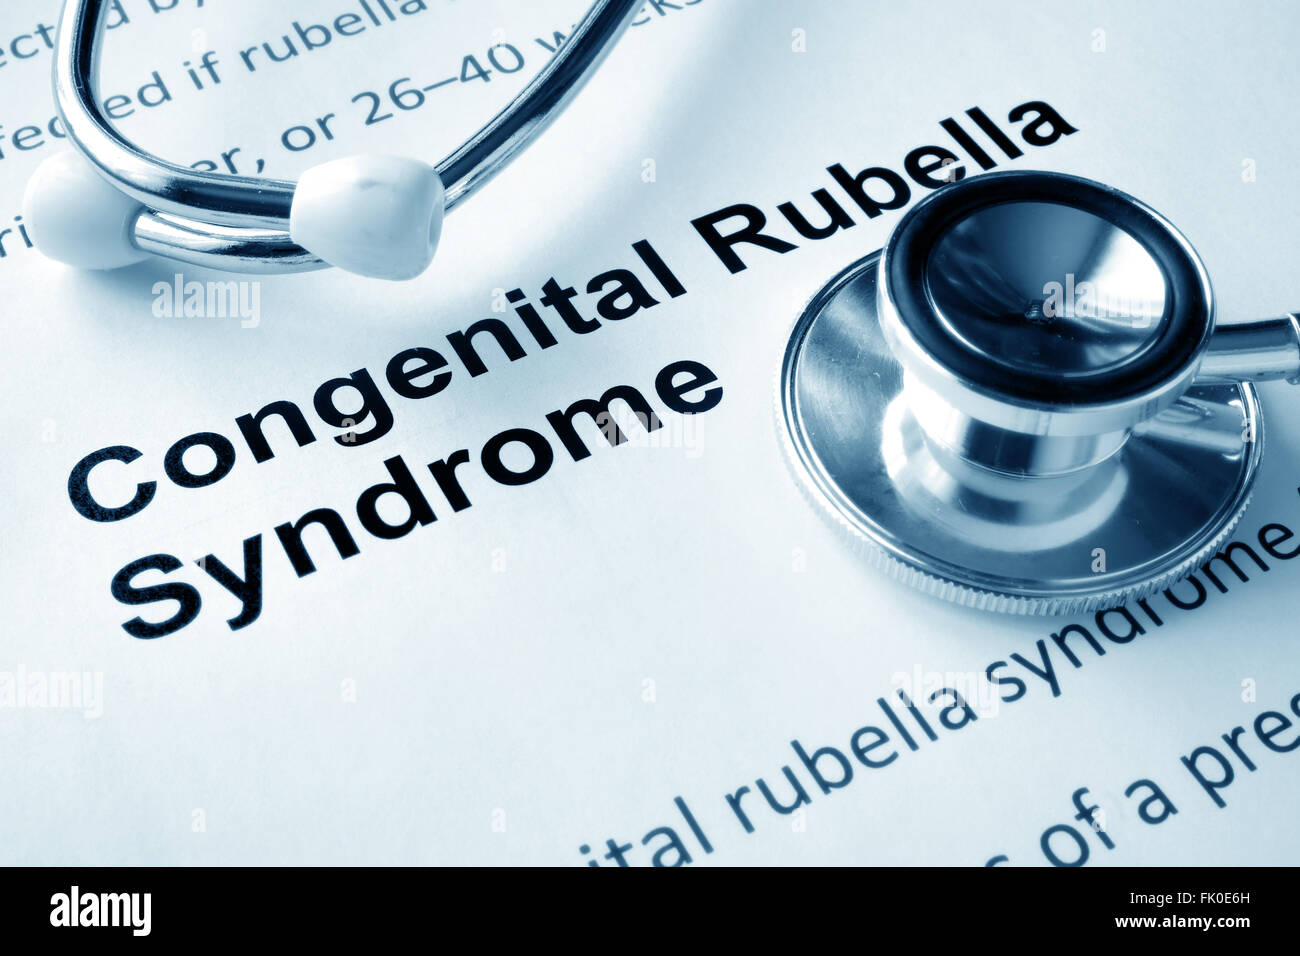 Paper with words  Congenital Rubella Syndrome - Stock Image